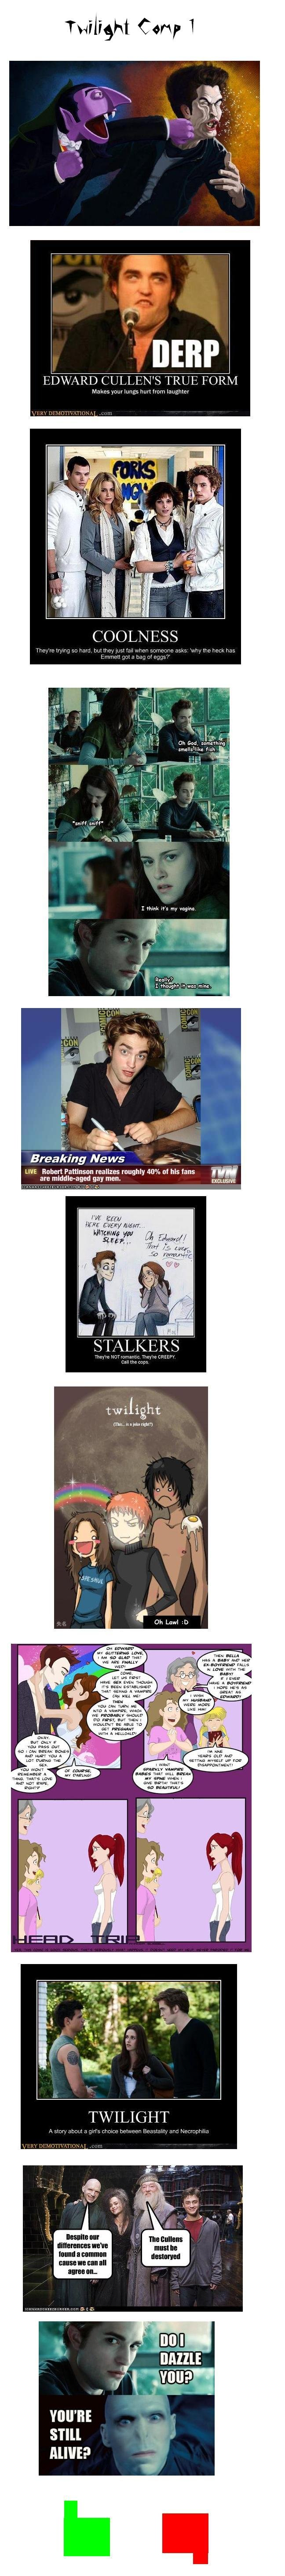 Twilight Comp 1. . Twig Comp I k near EDWARD CULLEN' S TRUE FORM lungs mm new laughter COOLNESS Breaking News .5' _ LIVE Mber. t, mamas roughly 40% Ill his tans